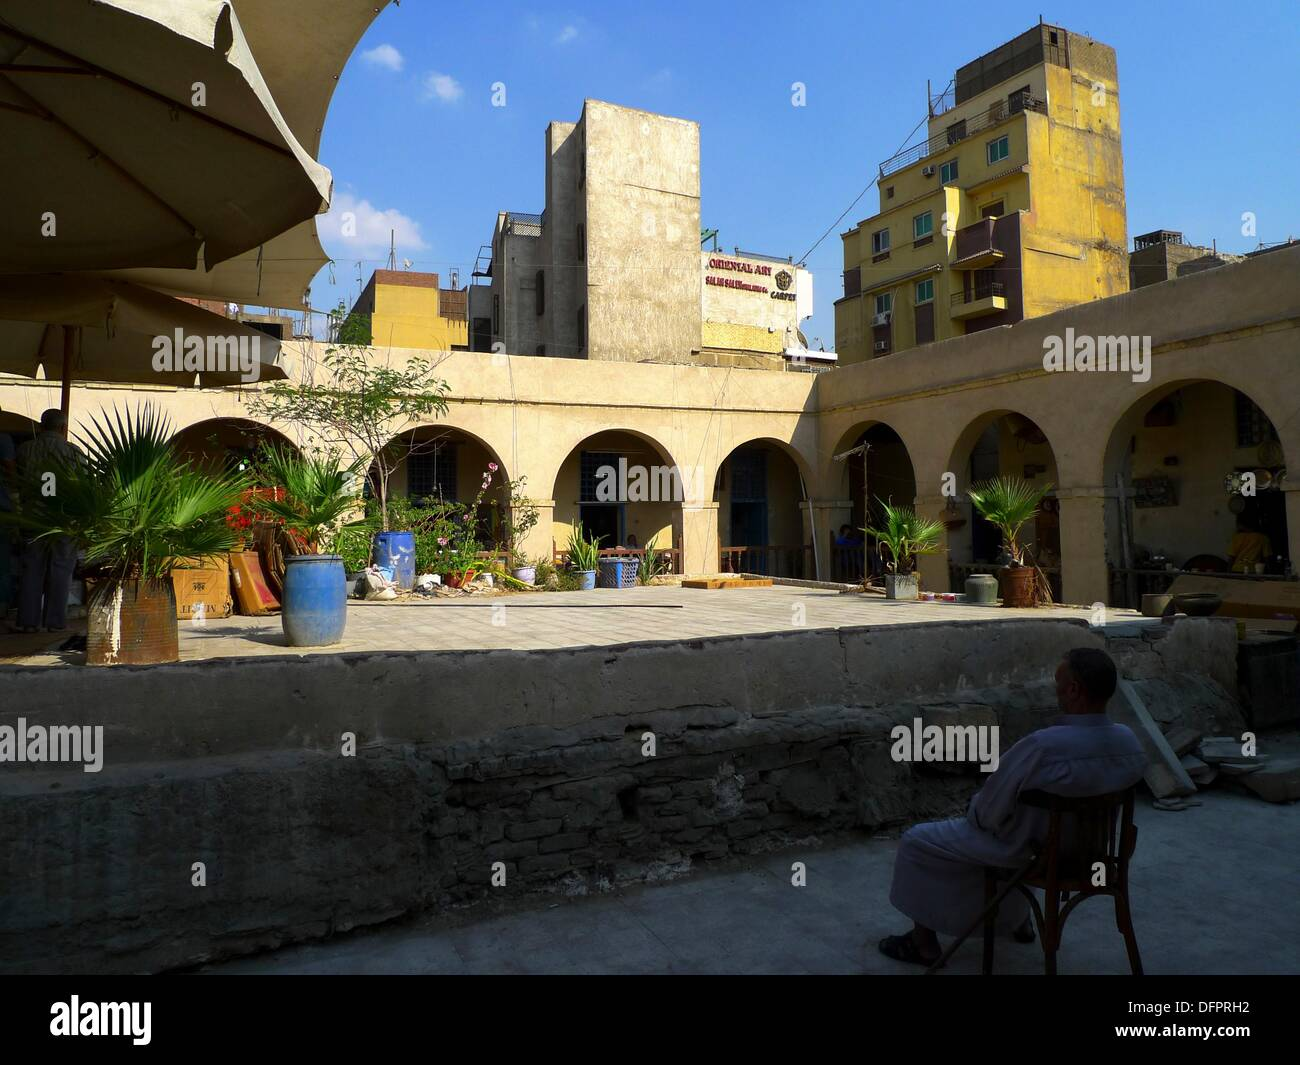 Bazars at Khan El Khalili , Islamic Quarter, Cairo, Egypt - Stock Image